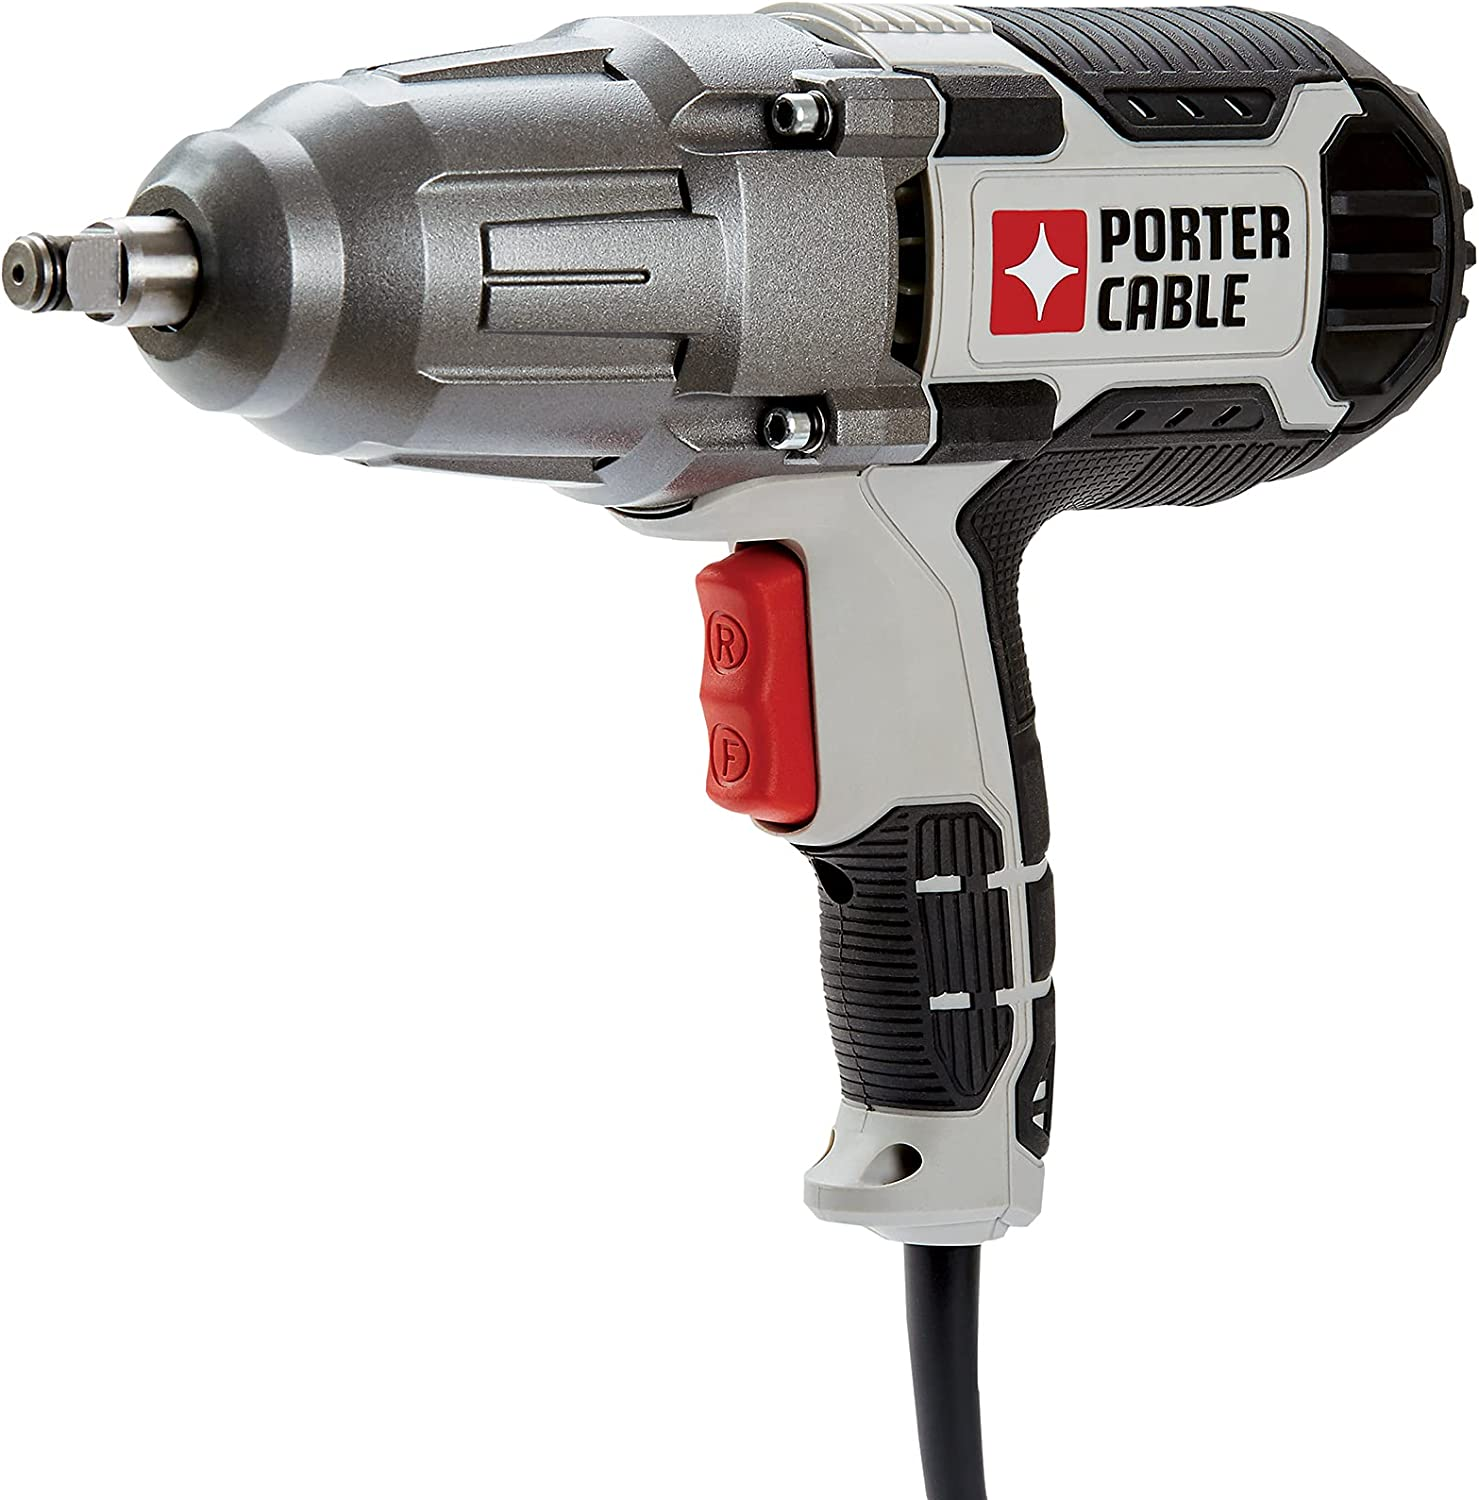 PORTER-CABLE PCE211 1/2-Inch Impact Wrench